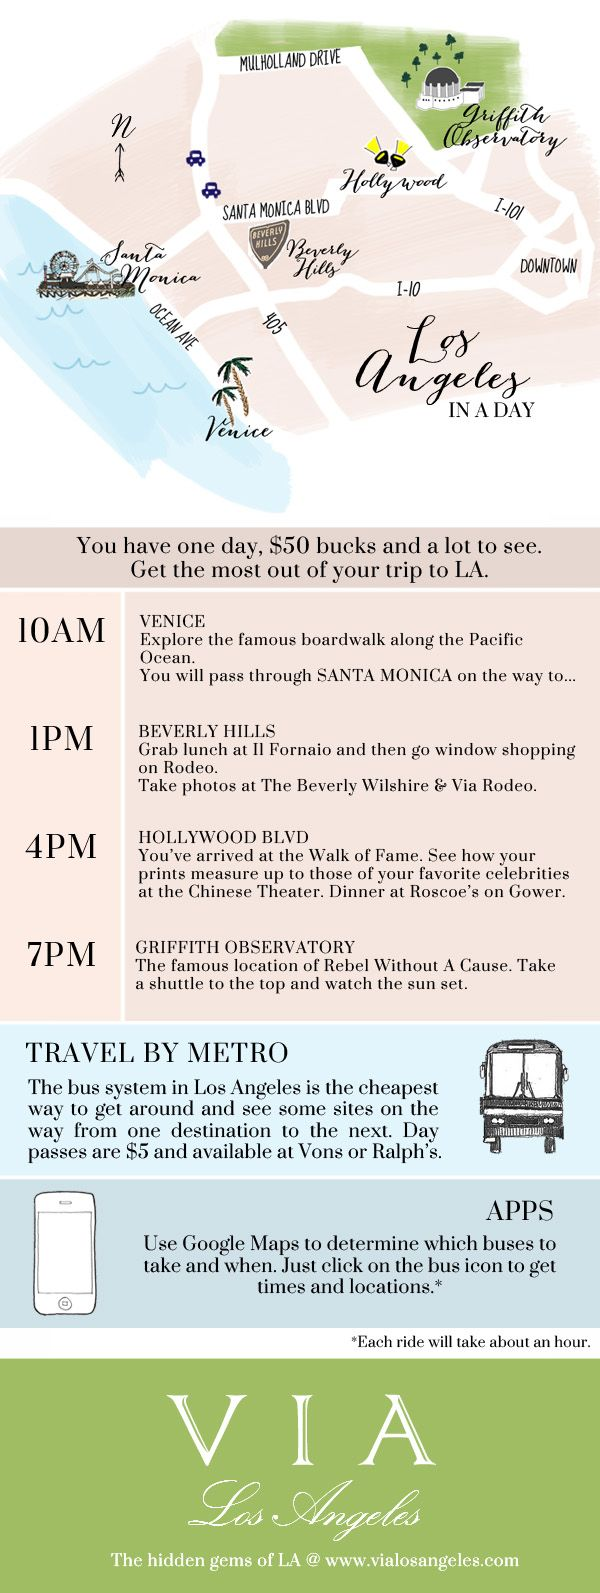 For Travelers: LA In A Day Map! via Via Los Angeles